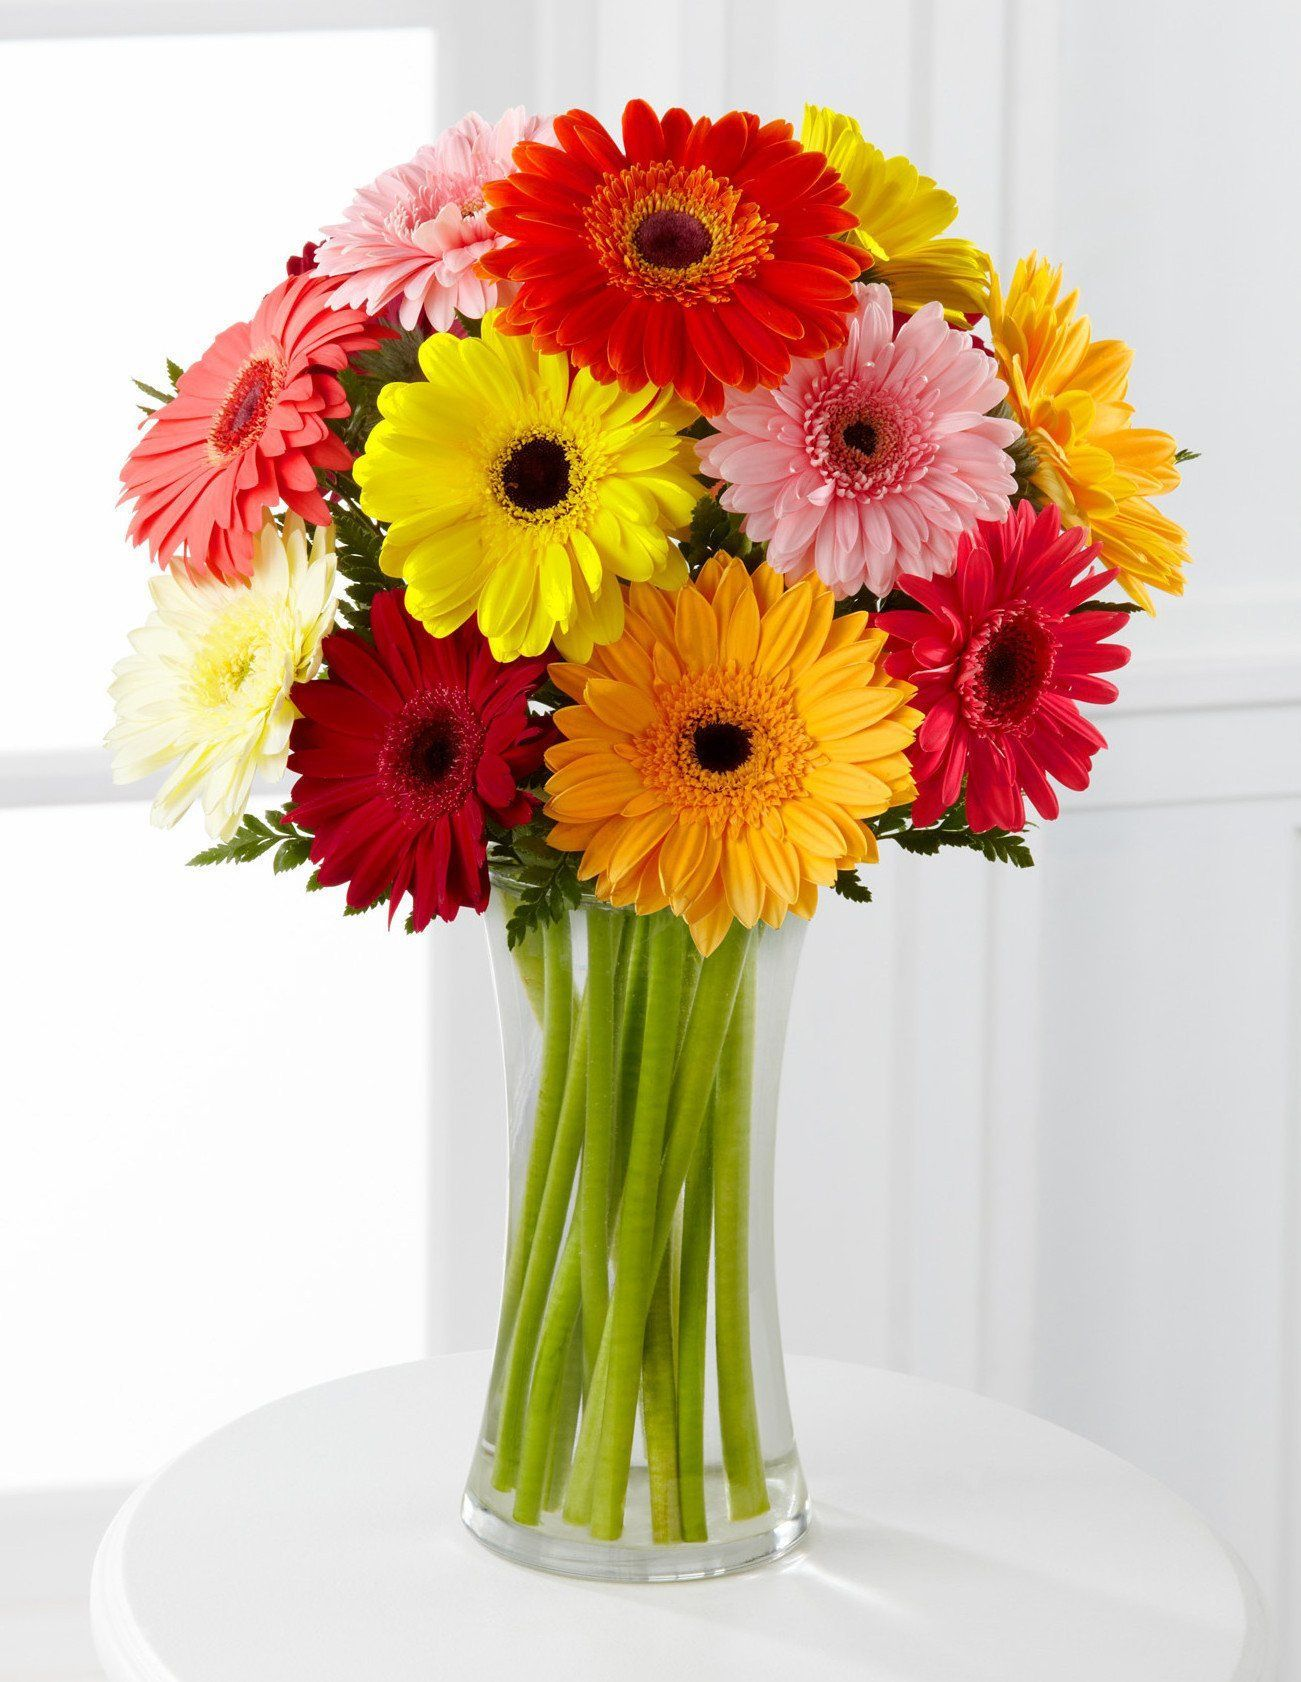 Colorful World Gerbera Daisy Bouquet 12 Stems With Vase Colorful World Gerbera Daisy Bouquet 12 Stems With Vase Bi In 2020 Gerbera Daisy Daisy Bouquet Gerbera